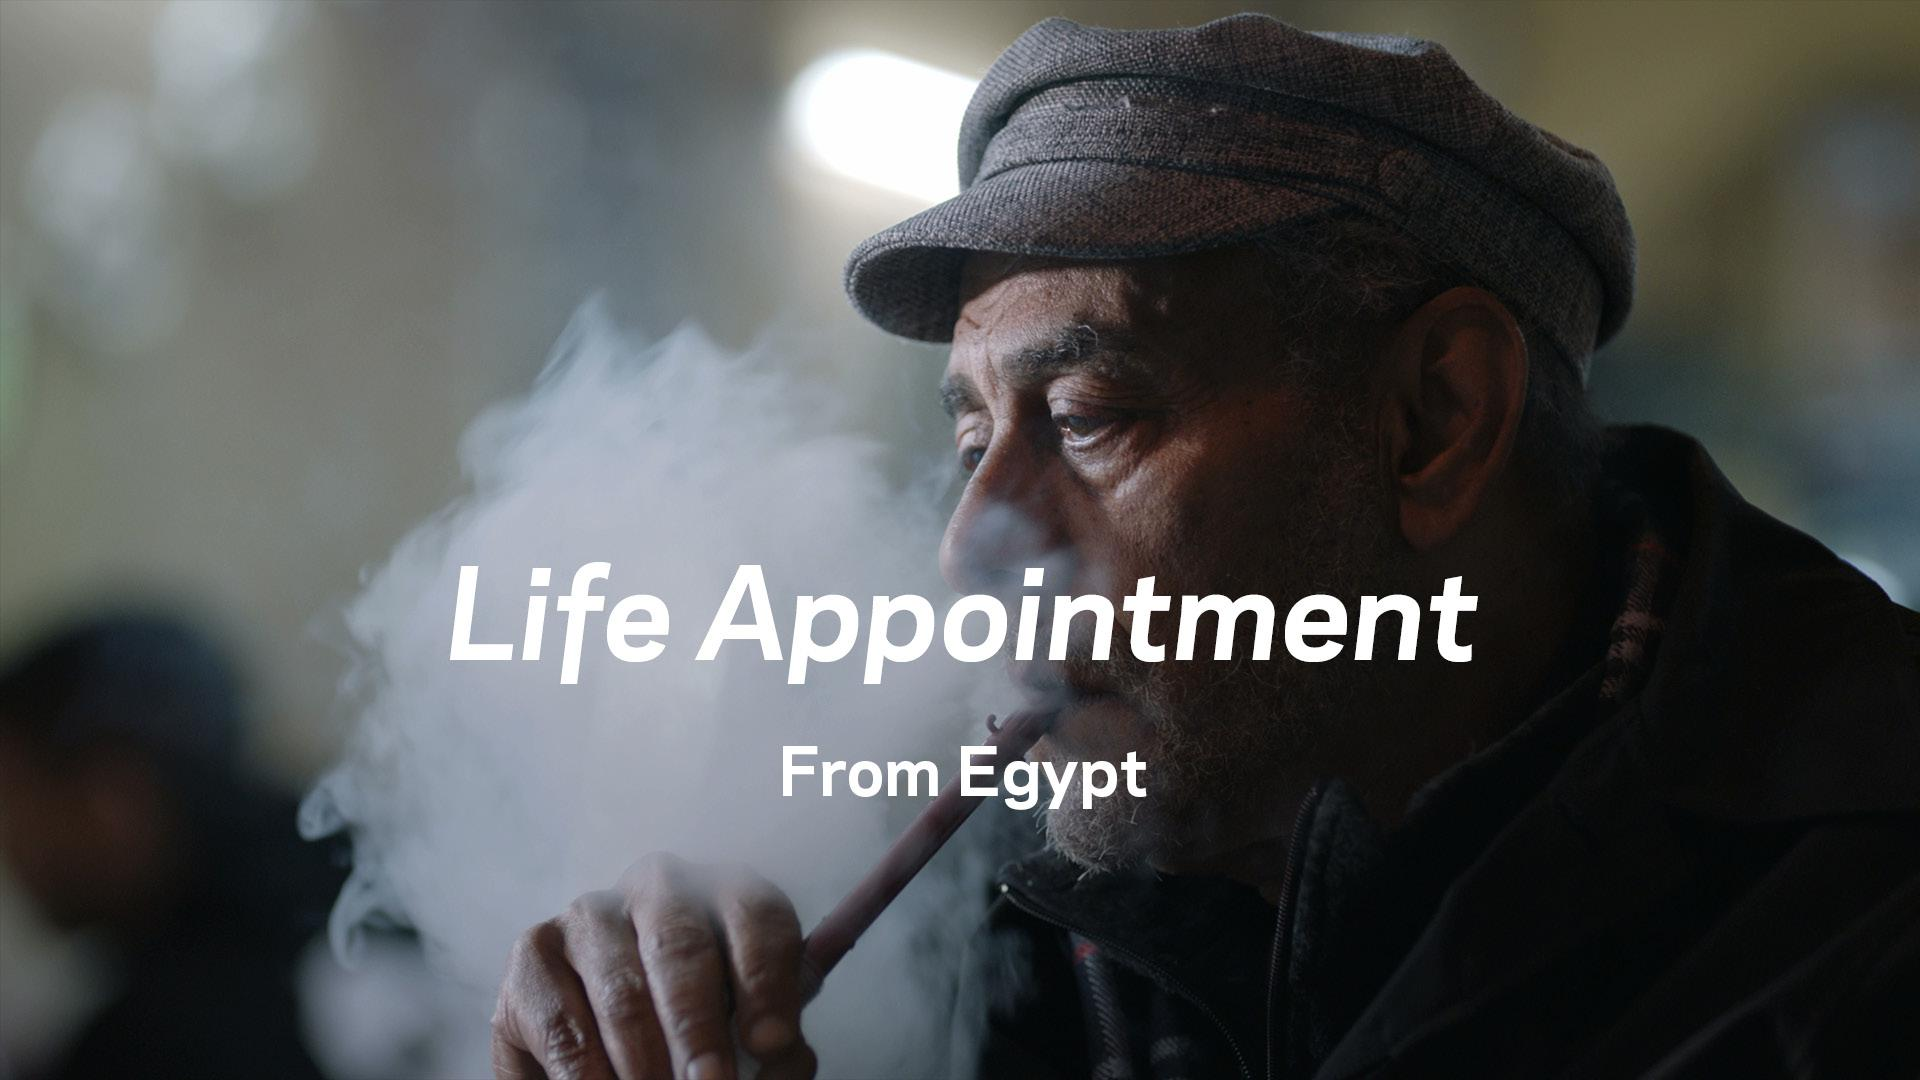 Life Appointment